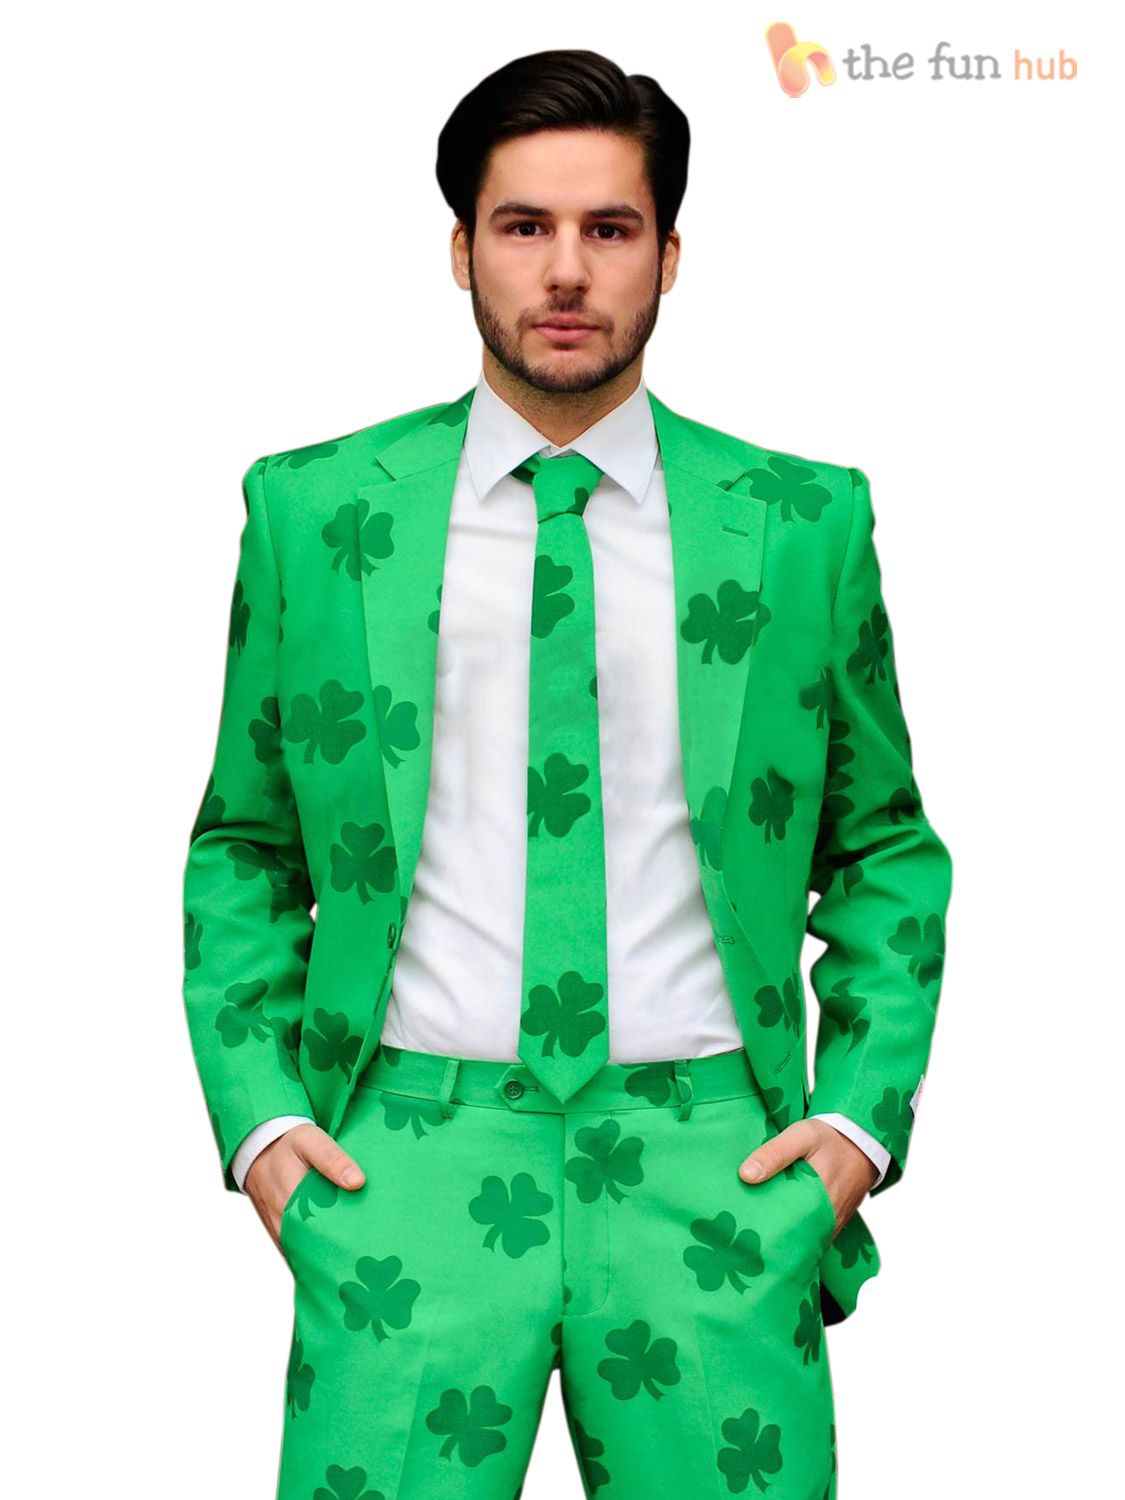 Mens green irish shamrock oppo suit st patricks day outfit